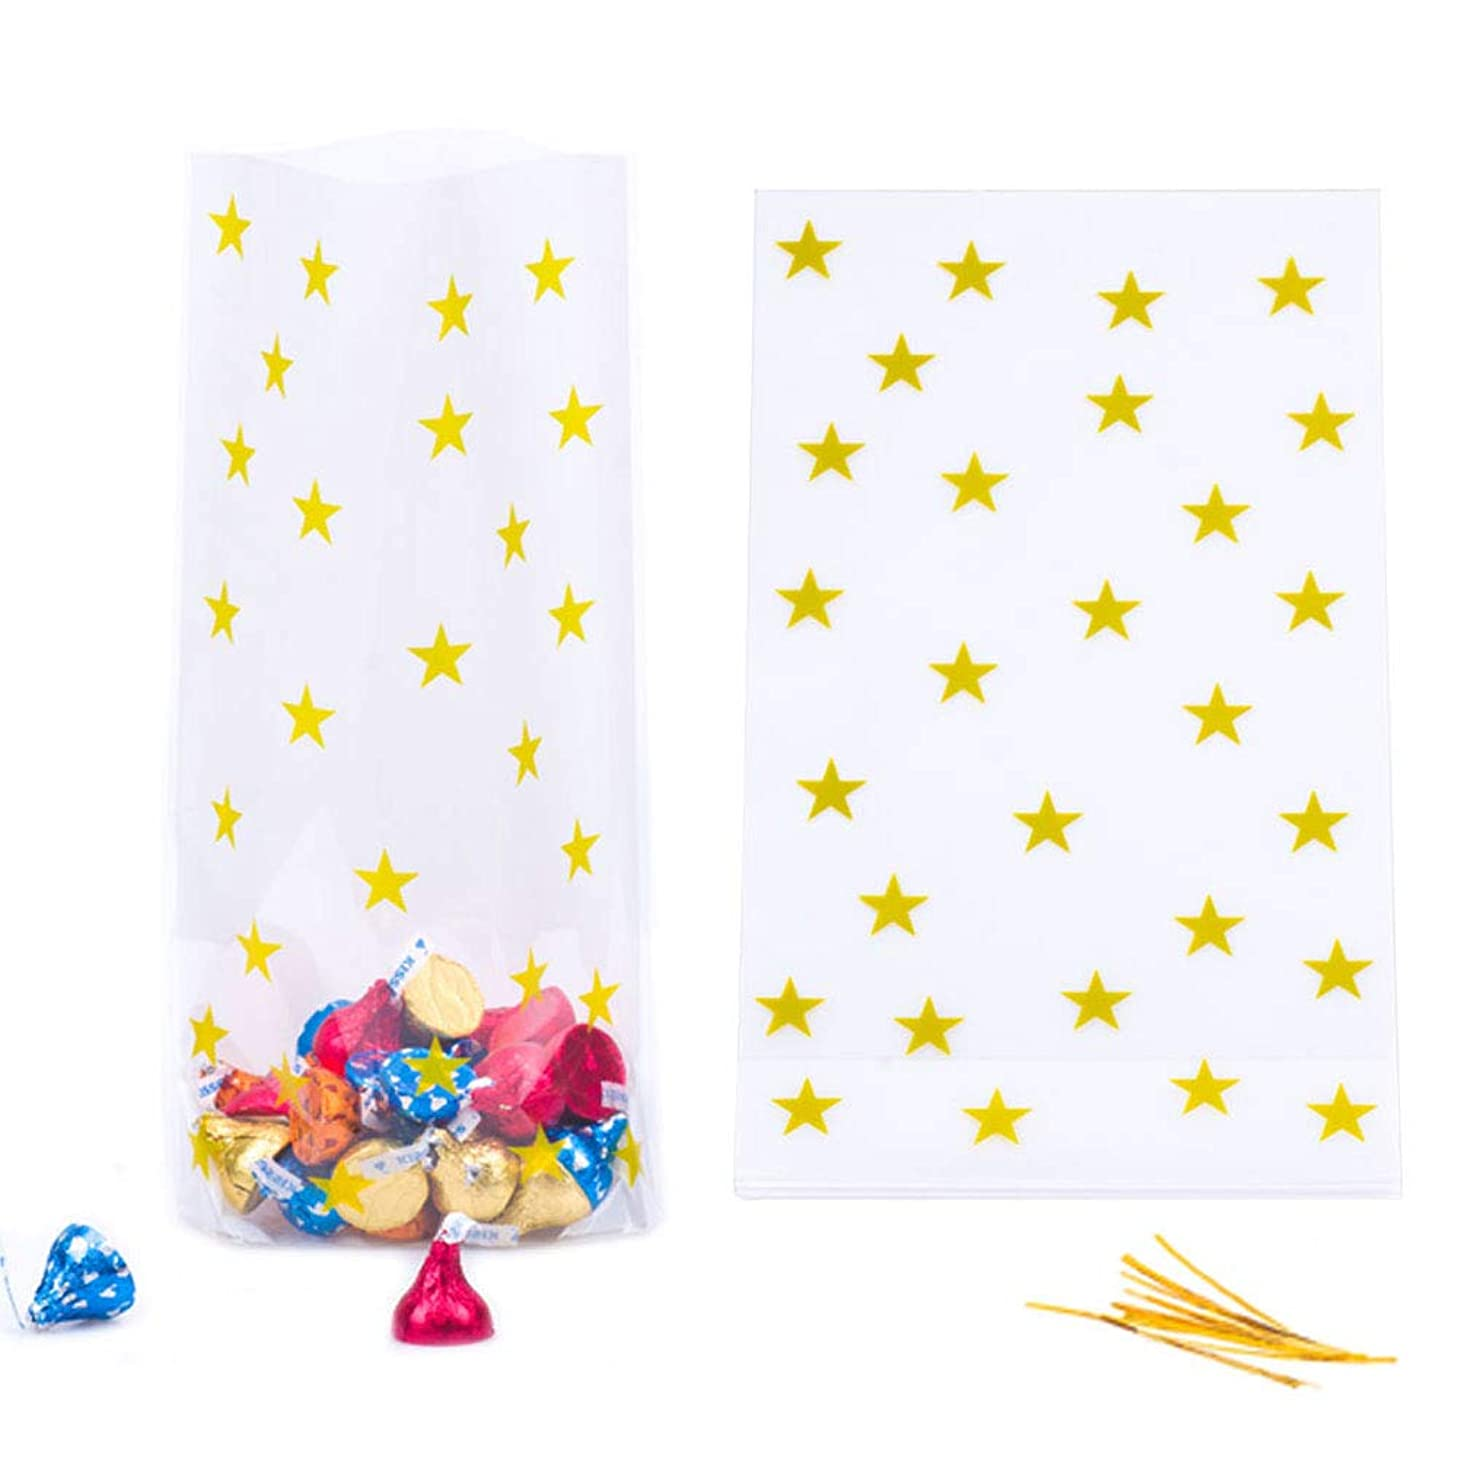 YESON Gold Star Clear Cello Bags Candy Plastic Favor cellophane Treat Bags,Pack of 50